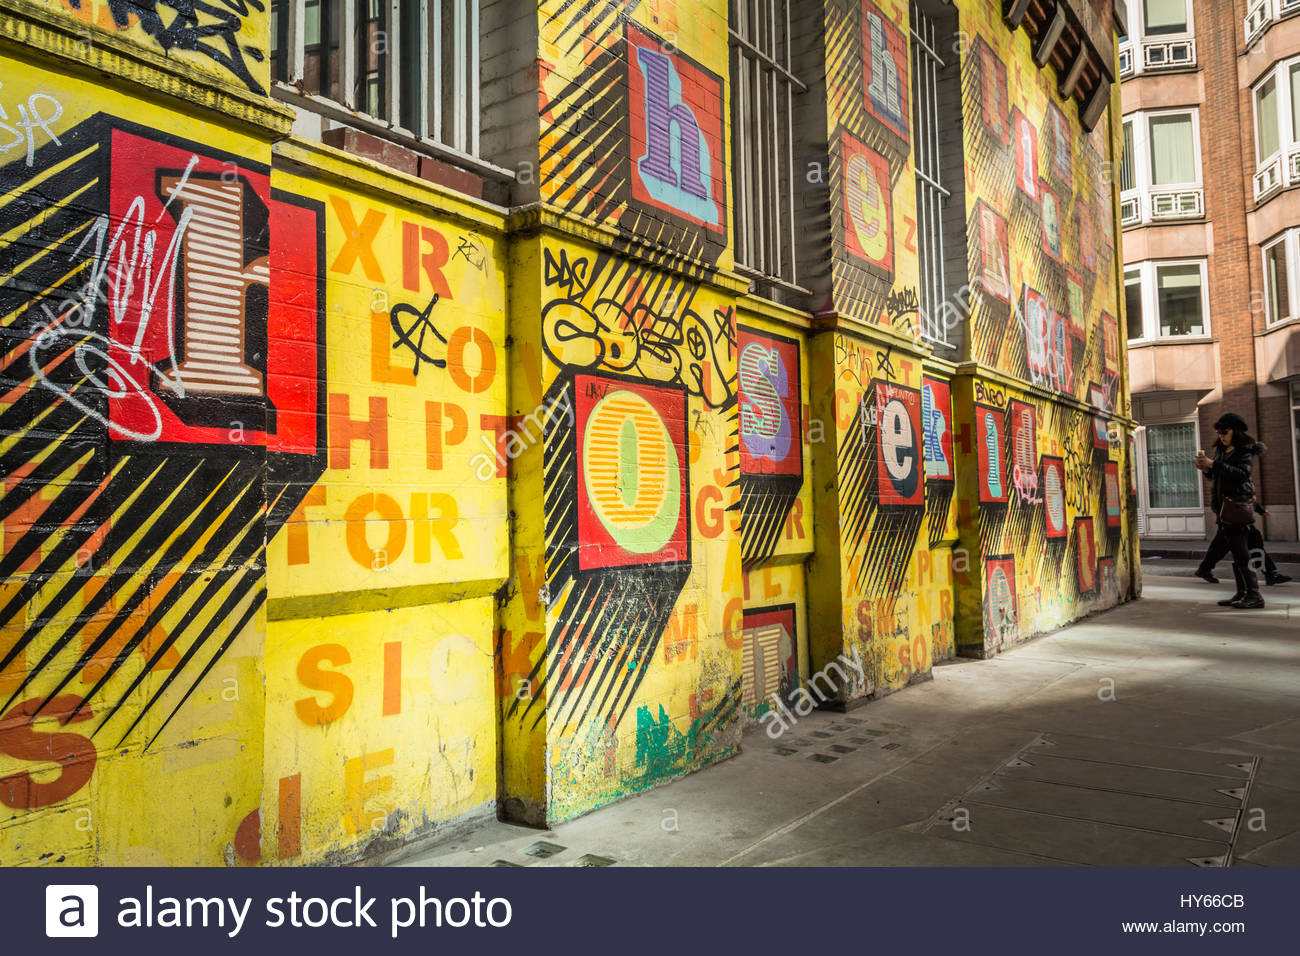 Alphabet Street Stock Photos & Alphabet Street Stock Images - Alamy